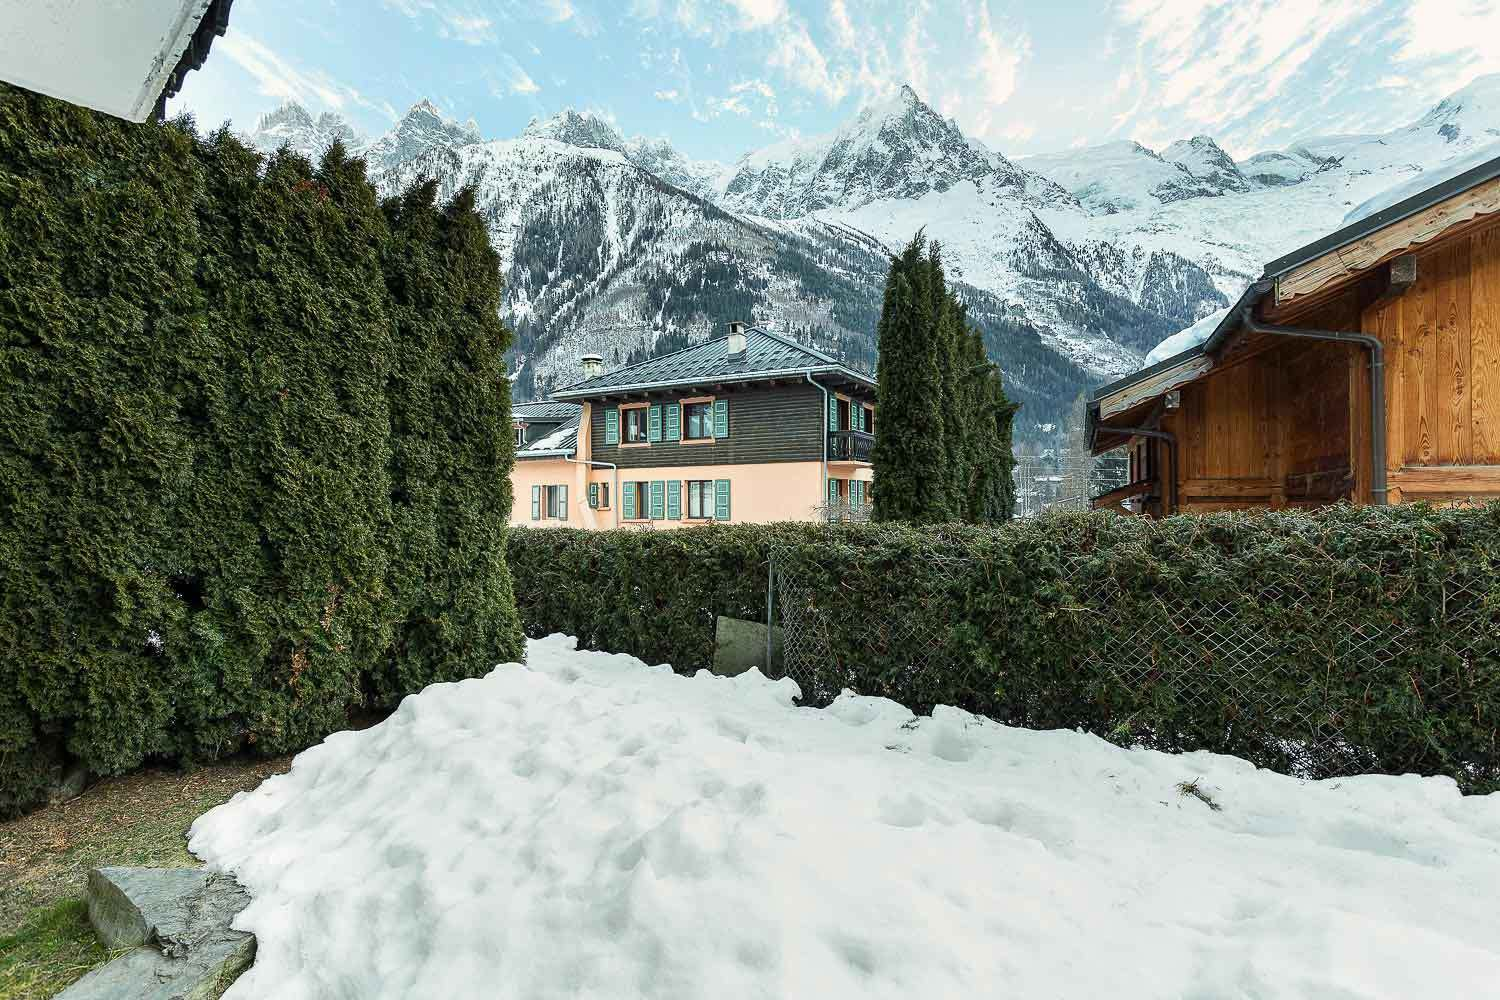 STUDIO PECLES - CENTRAL CHAMONIX